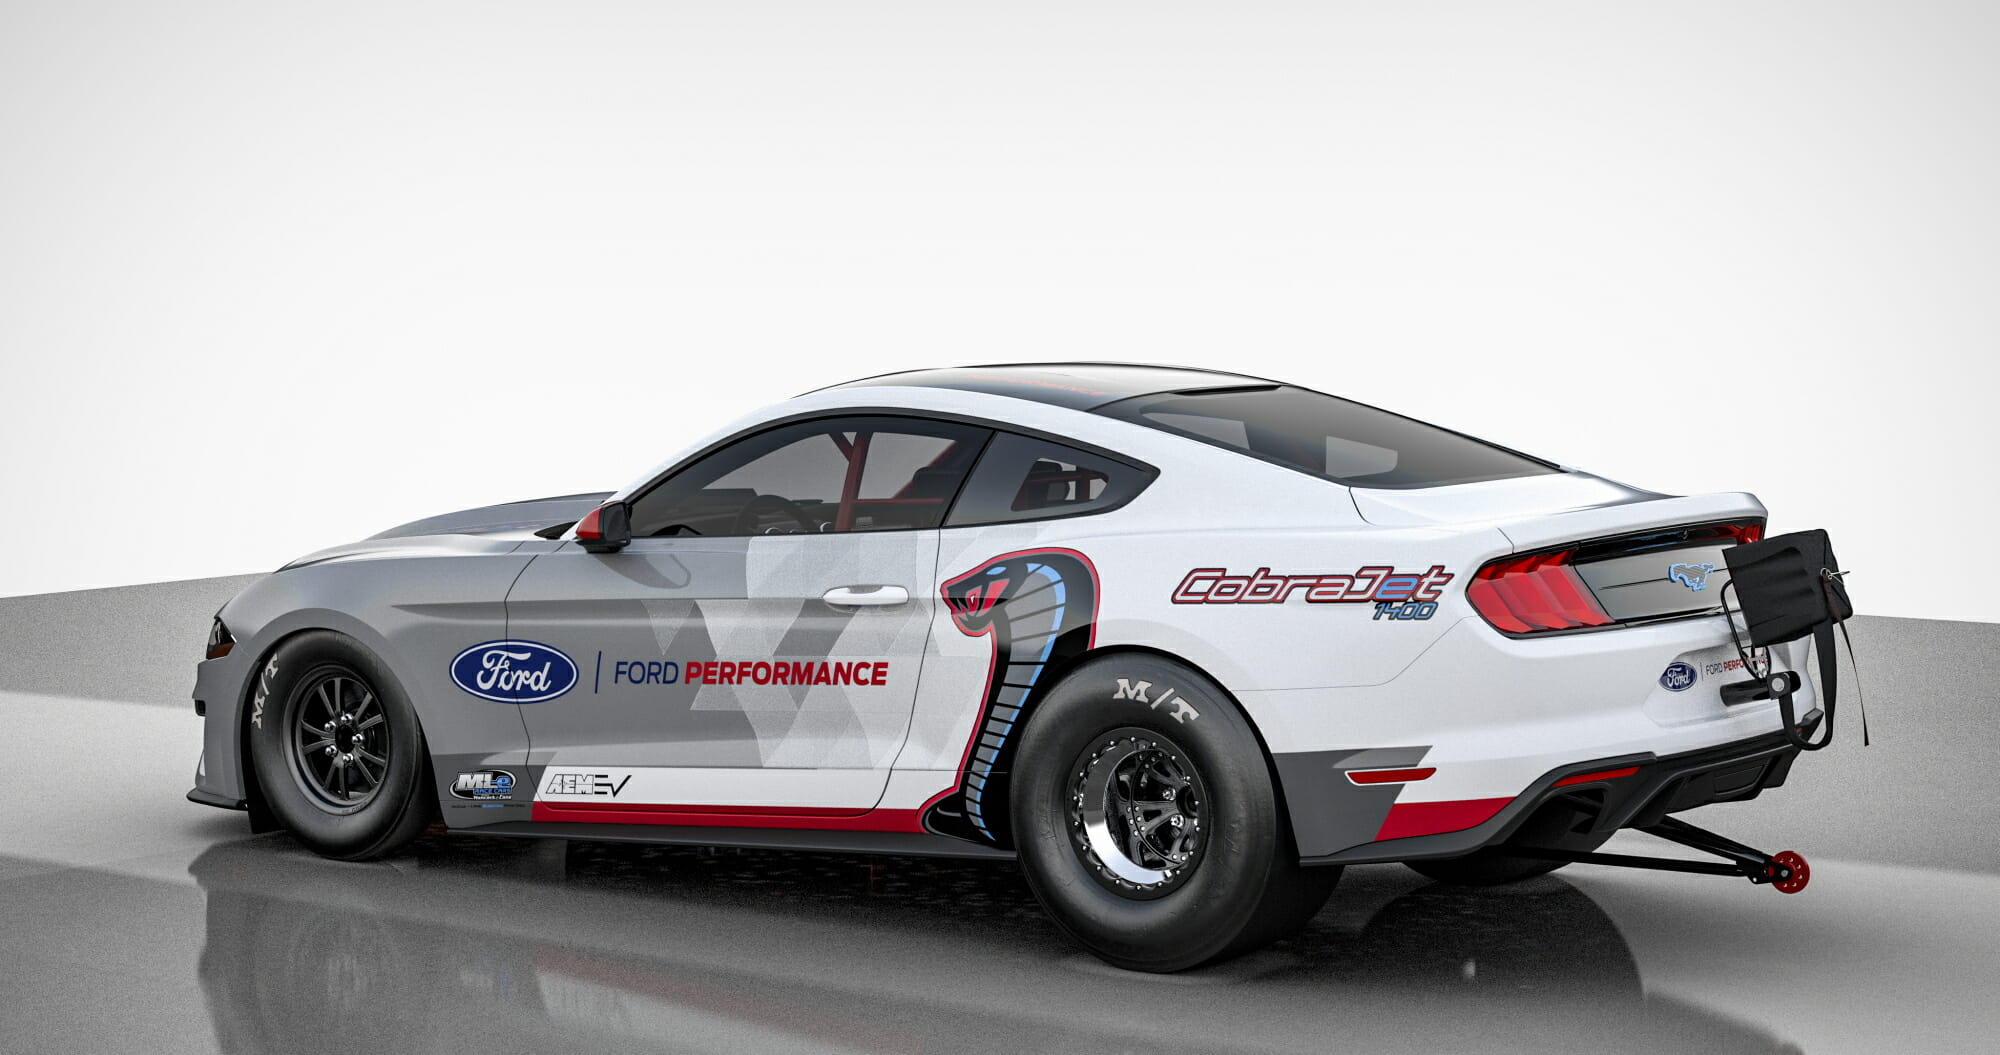 The battery-powered Mustang Cobra Jet 1400 prototype is purpose-built and projected to deliver over 1,400 horsepower and over 1,100 ft.-lbs. of instant torque to demonstrate the capabilities of an electric powertrain in one of the most demanding race environments.